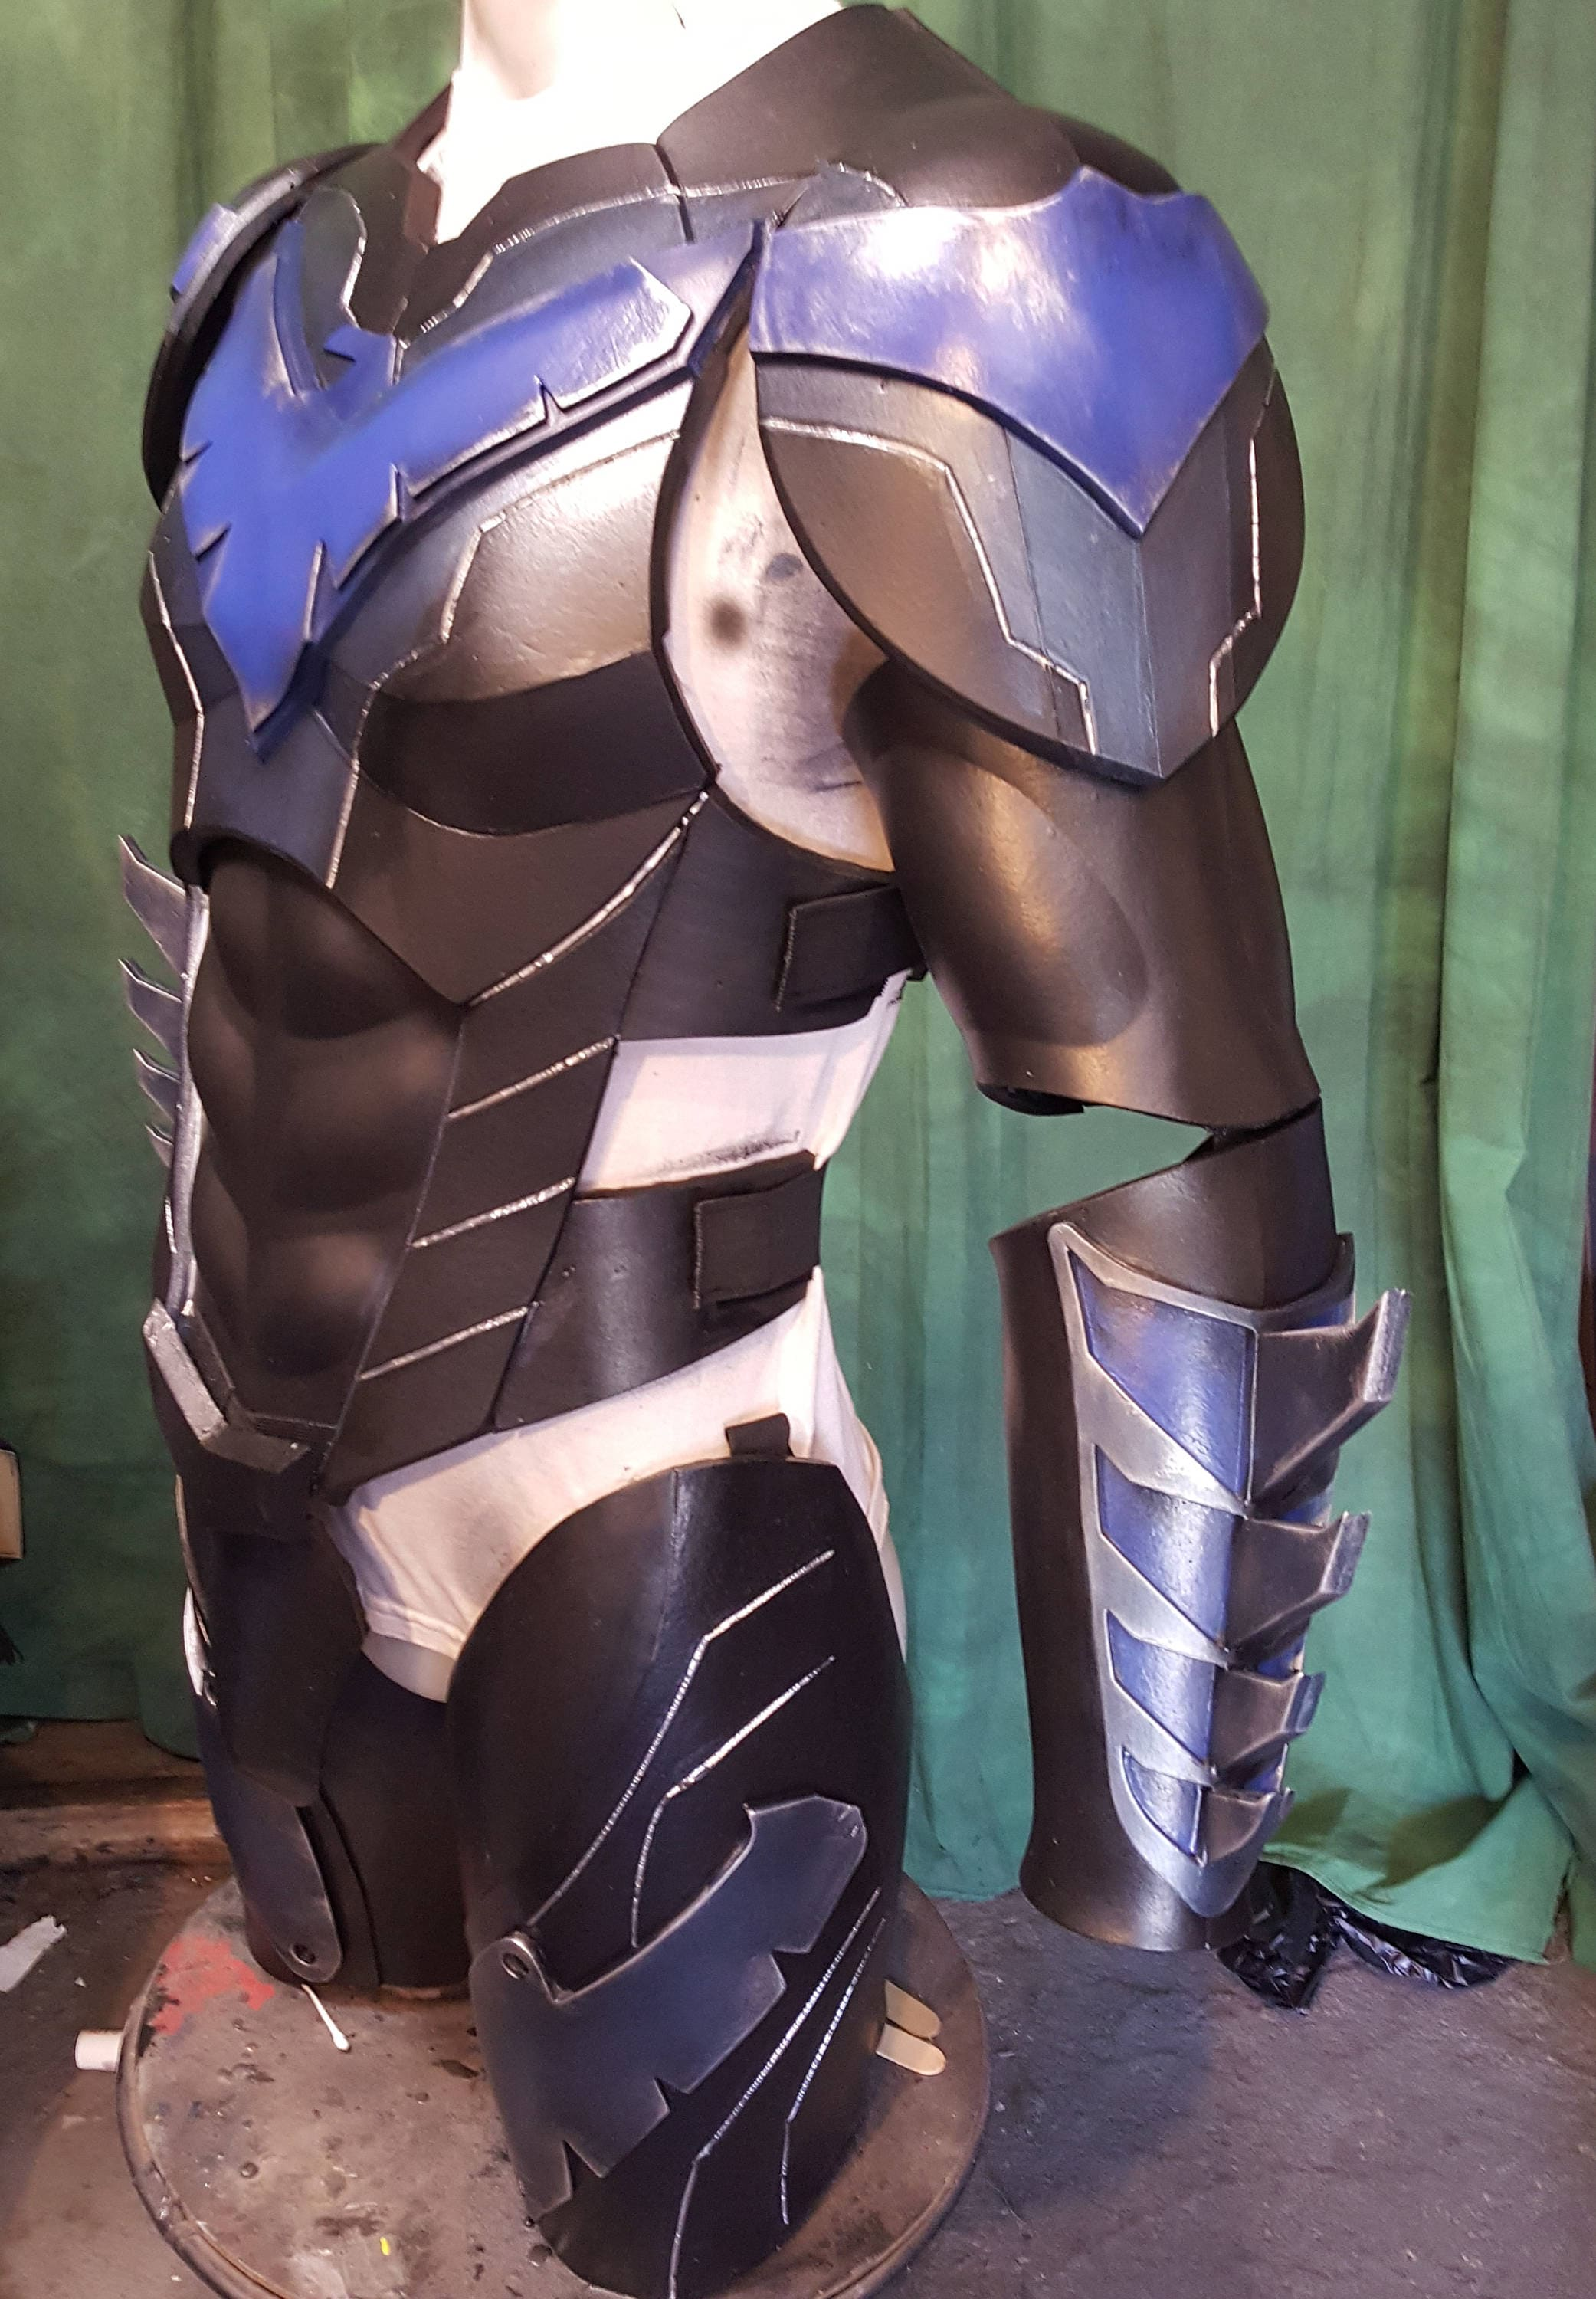 Nightwlng complete foam armor templates from xiengprod on etsy studio this is a digital file maxwellsz